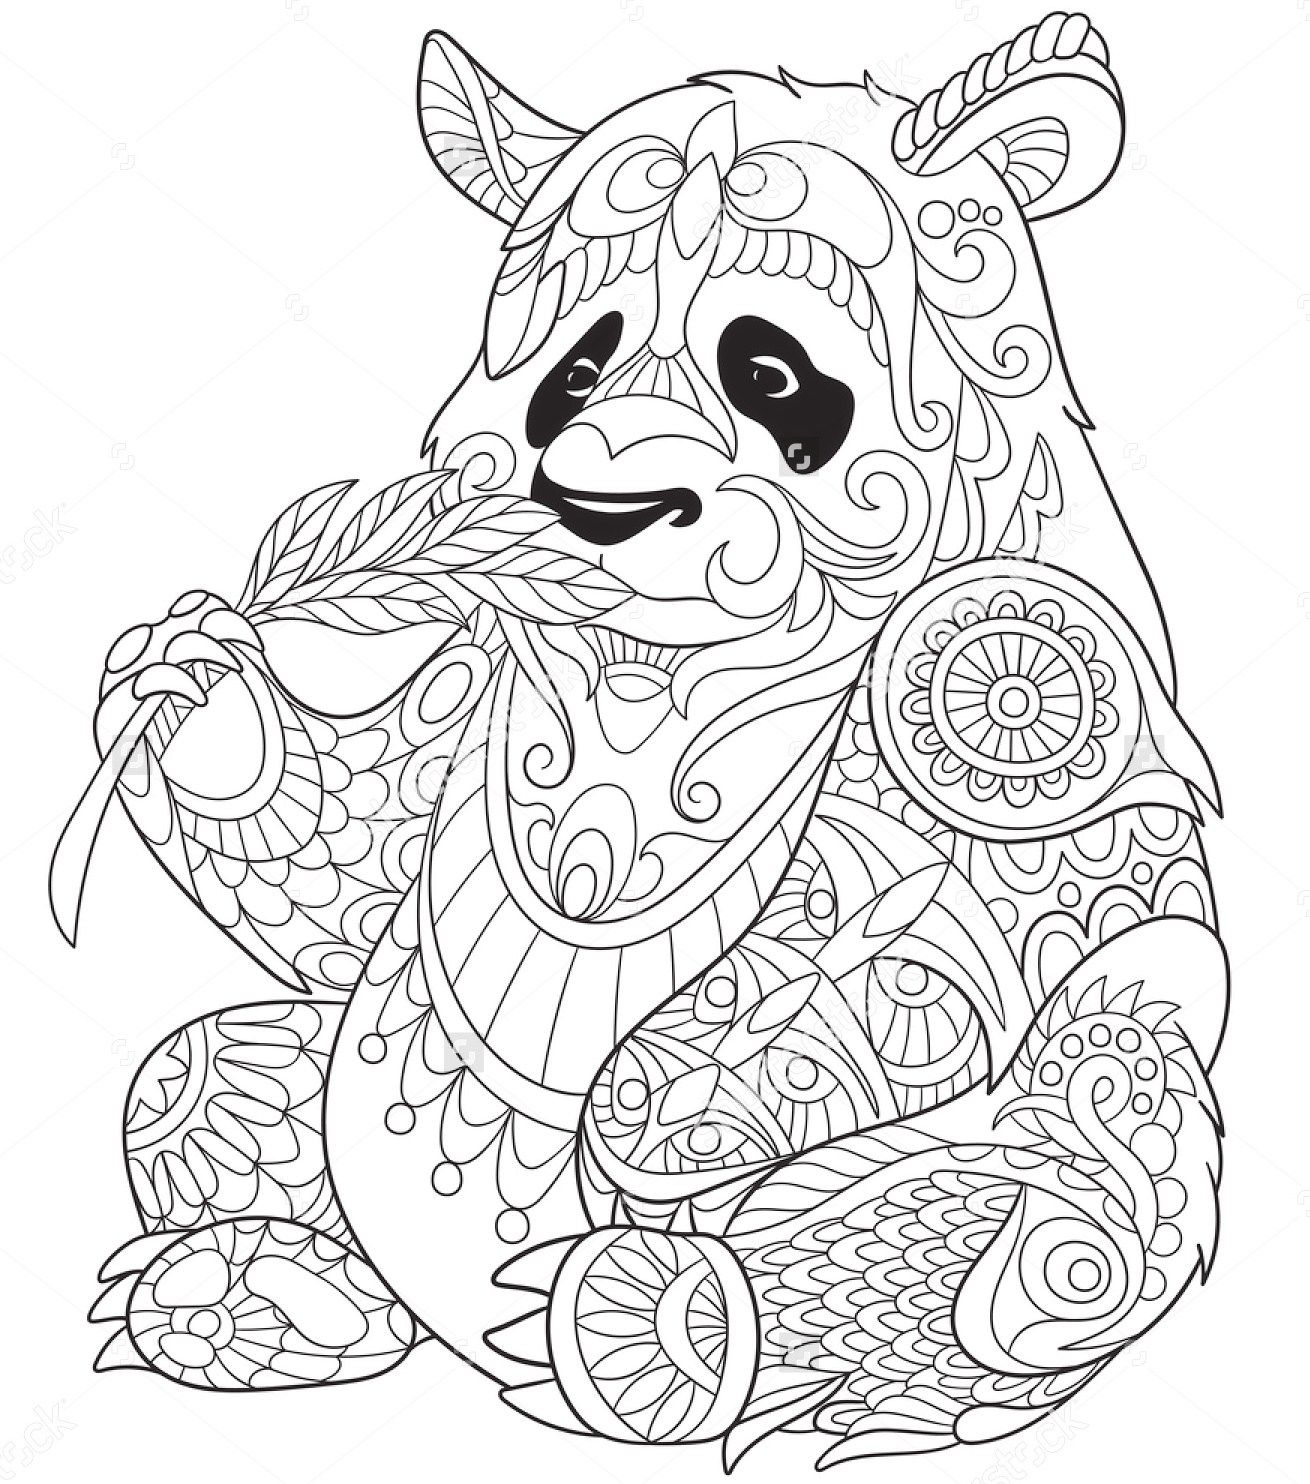 panda eating bamboo zentangle coloring page - Zentangle Coloring Pages